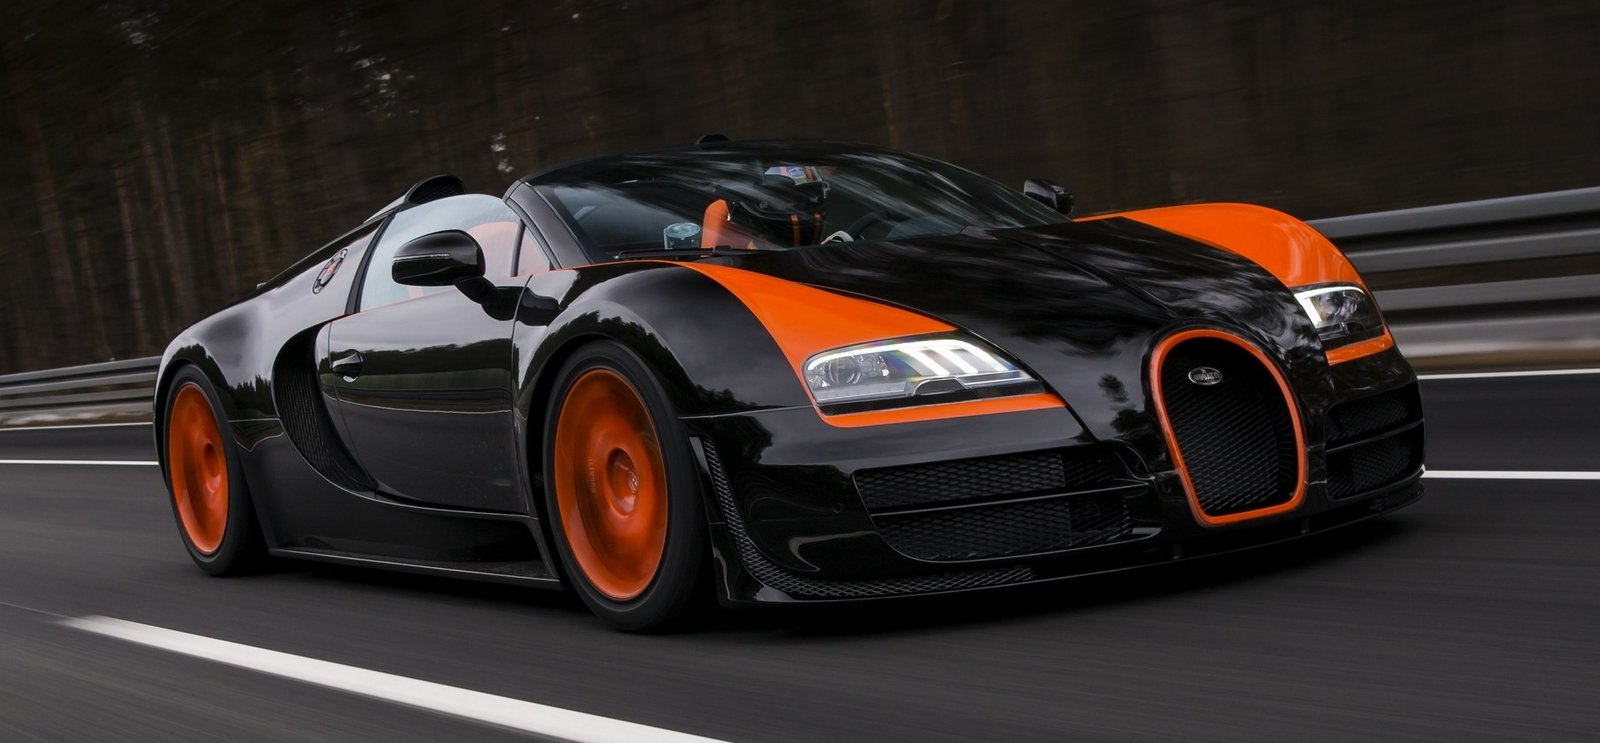 2013 bugatti veyron vitesse wrc limited edition picture. Black Bedroom Furniture Sets. Home Design Ideas